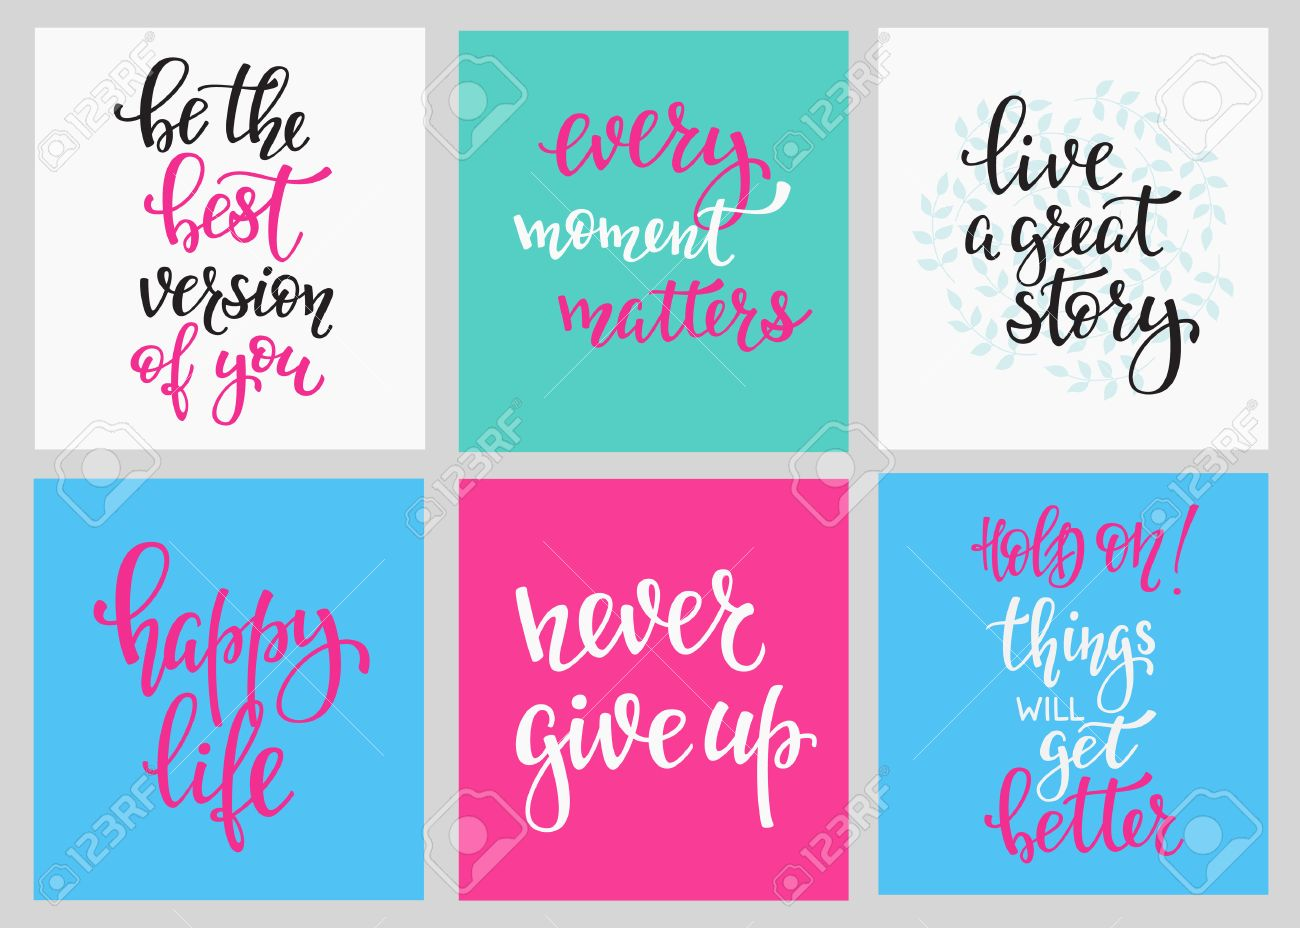 Lettering vector postcard quotes set. Motivational cute inspiration typography. Calligraphy photo graphic design element. Hand written sign. Every moment matters Give up Live great story Happy life - 61109008